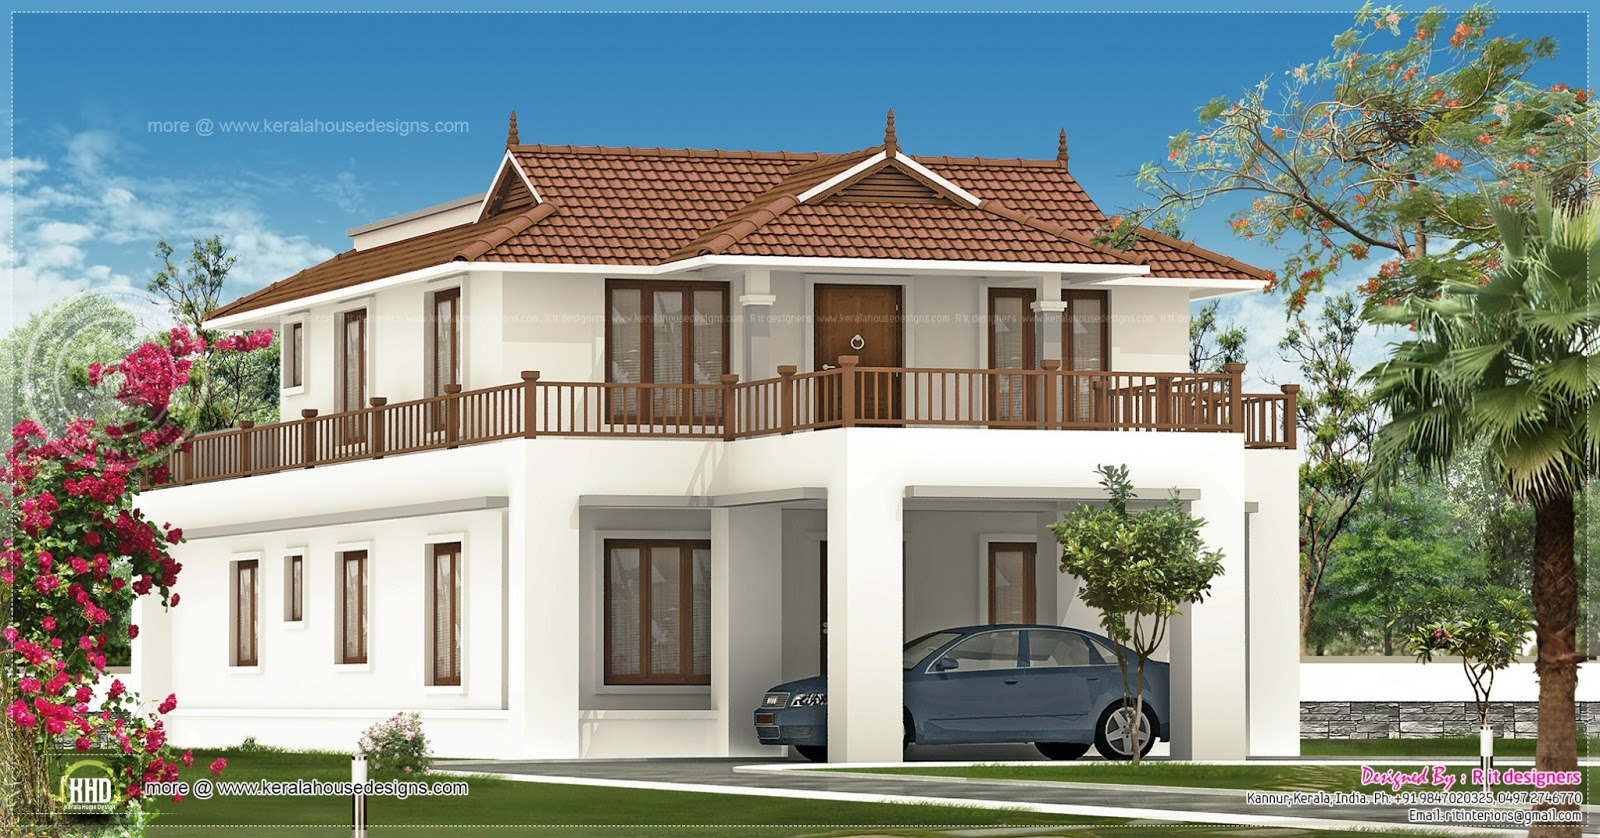 2820 square feet house exterior design home kerala plans for Home exterior design